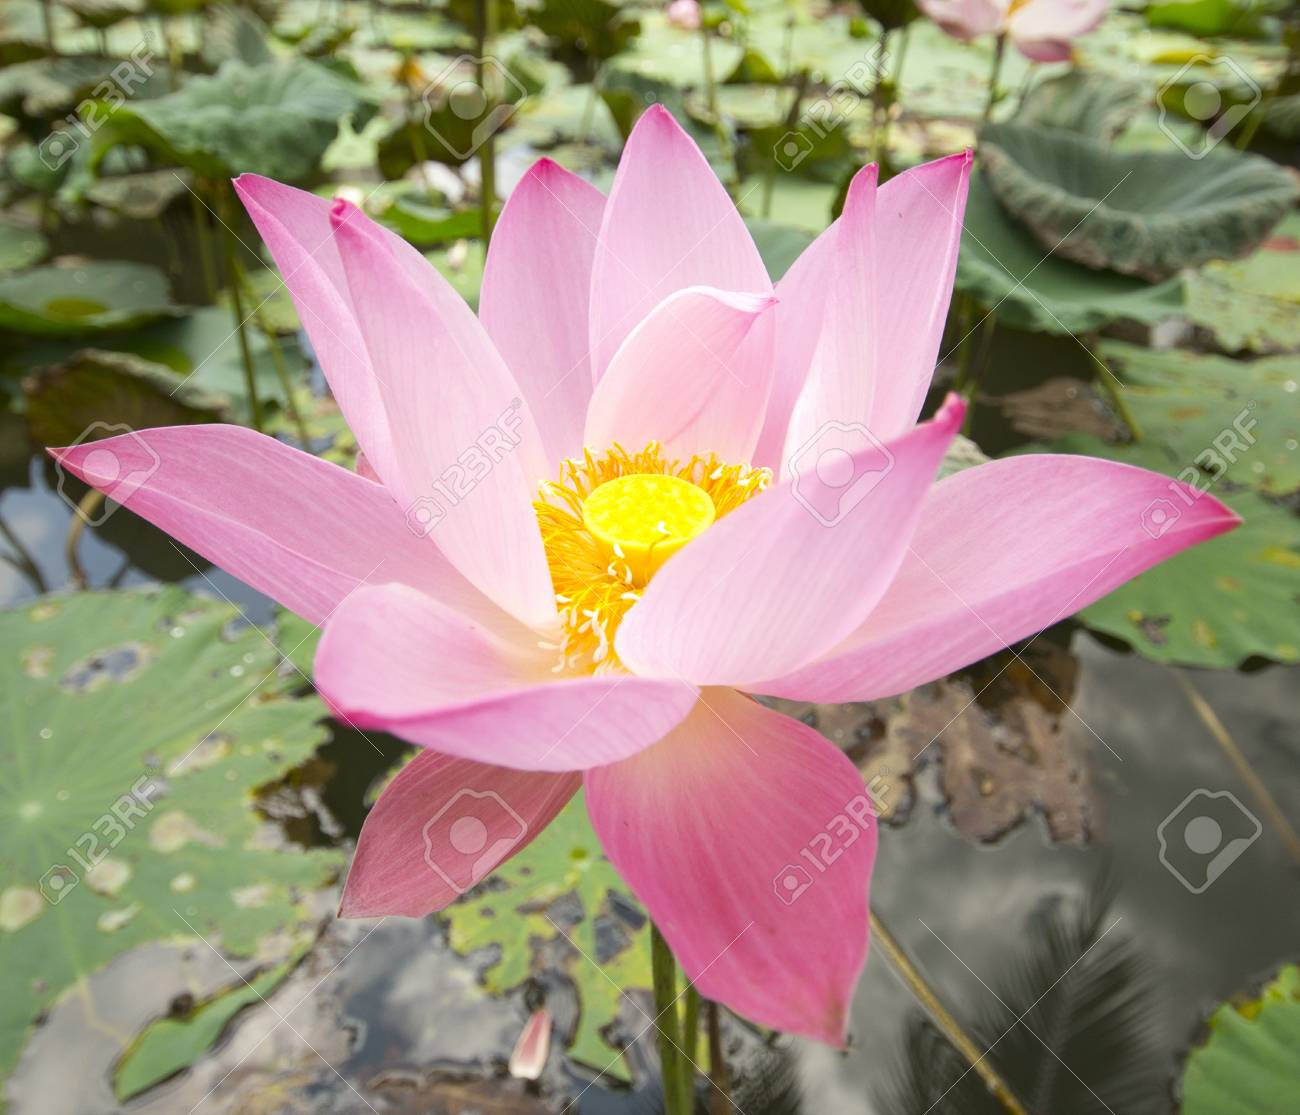 Closeup A Blooming Pink Lotus Flower With Yellow Seed Head Stock